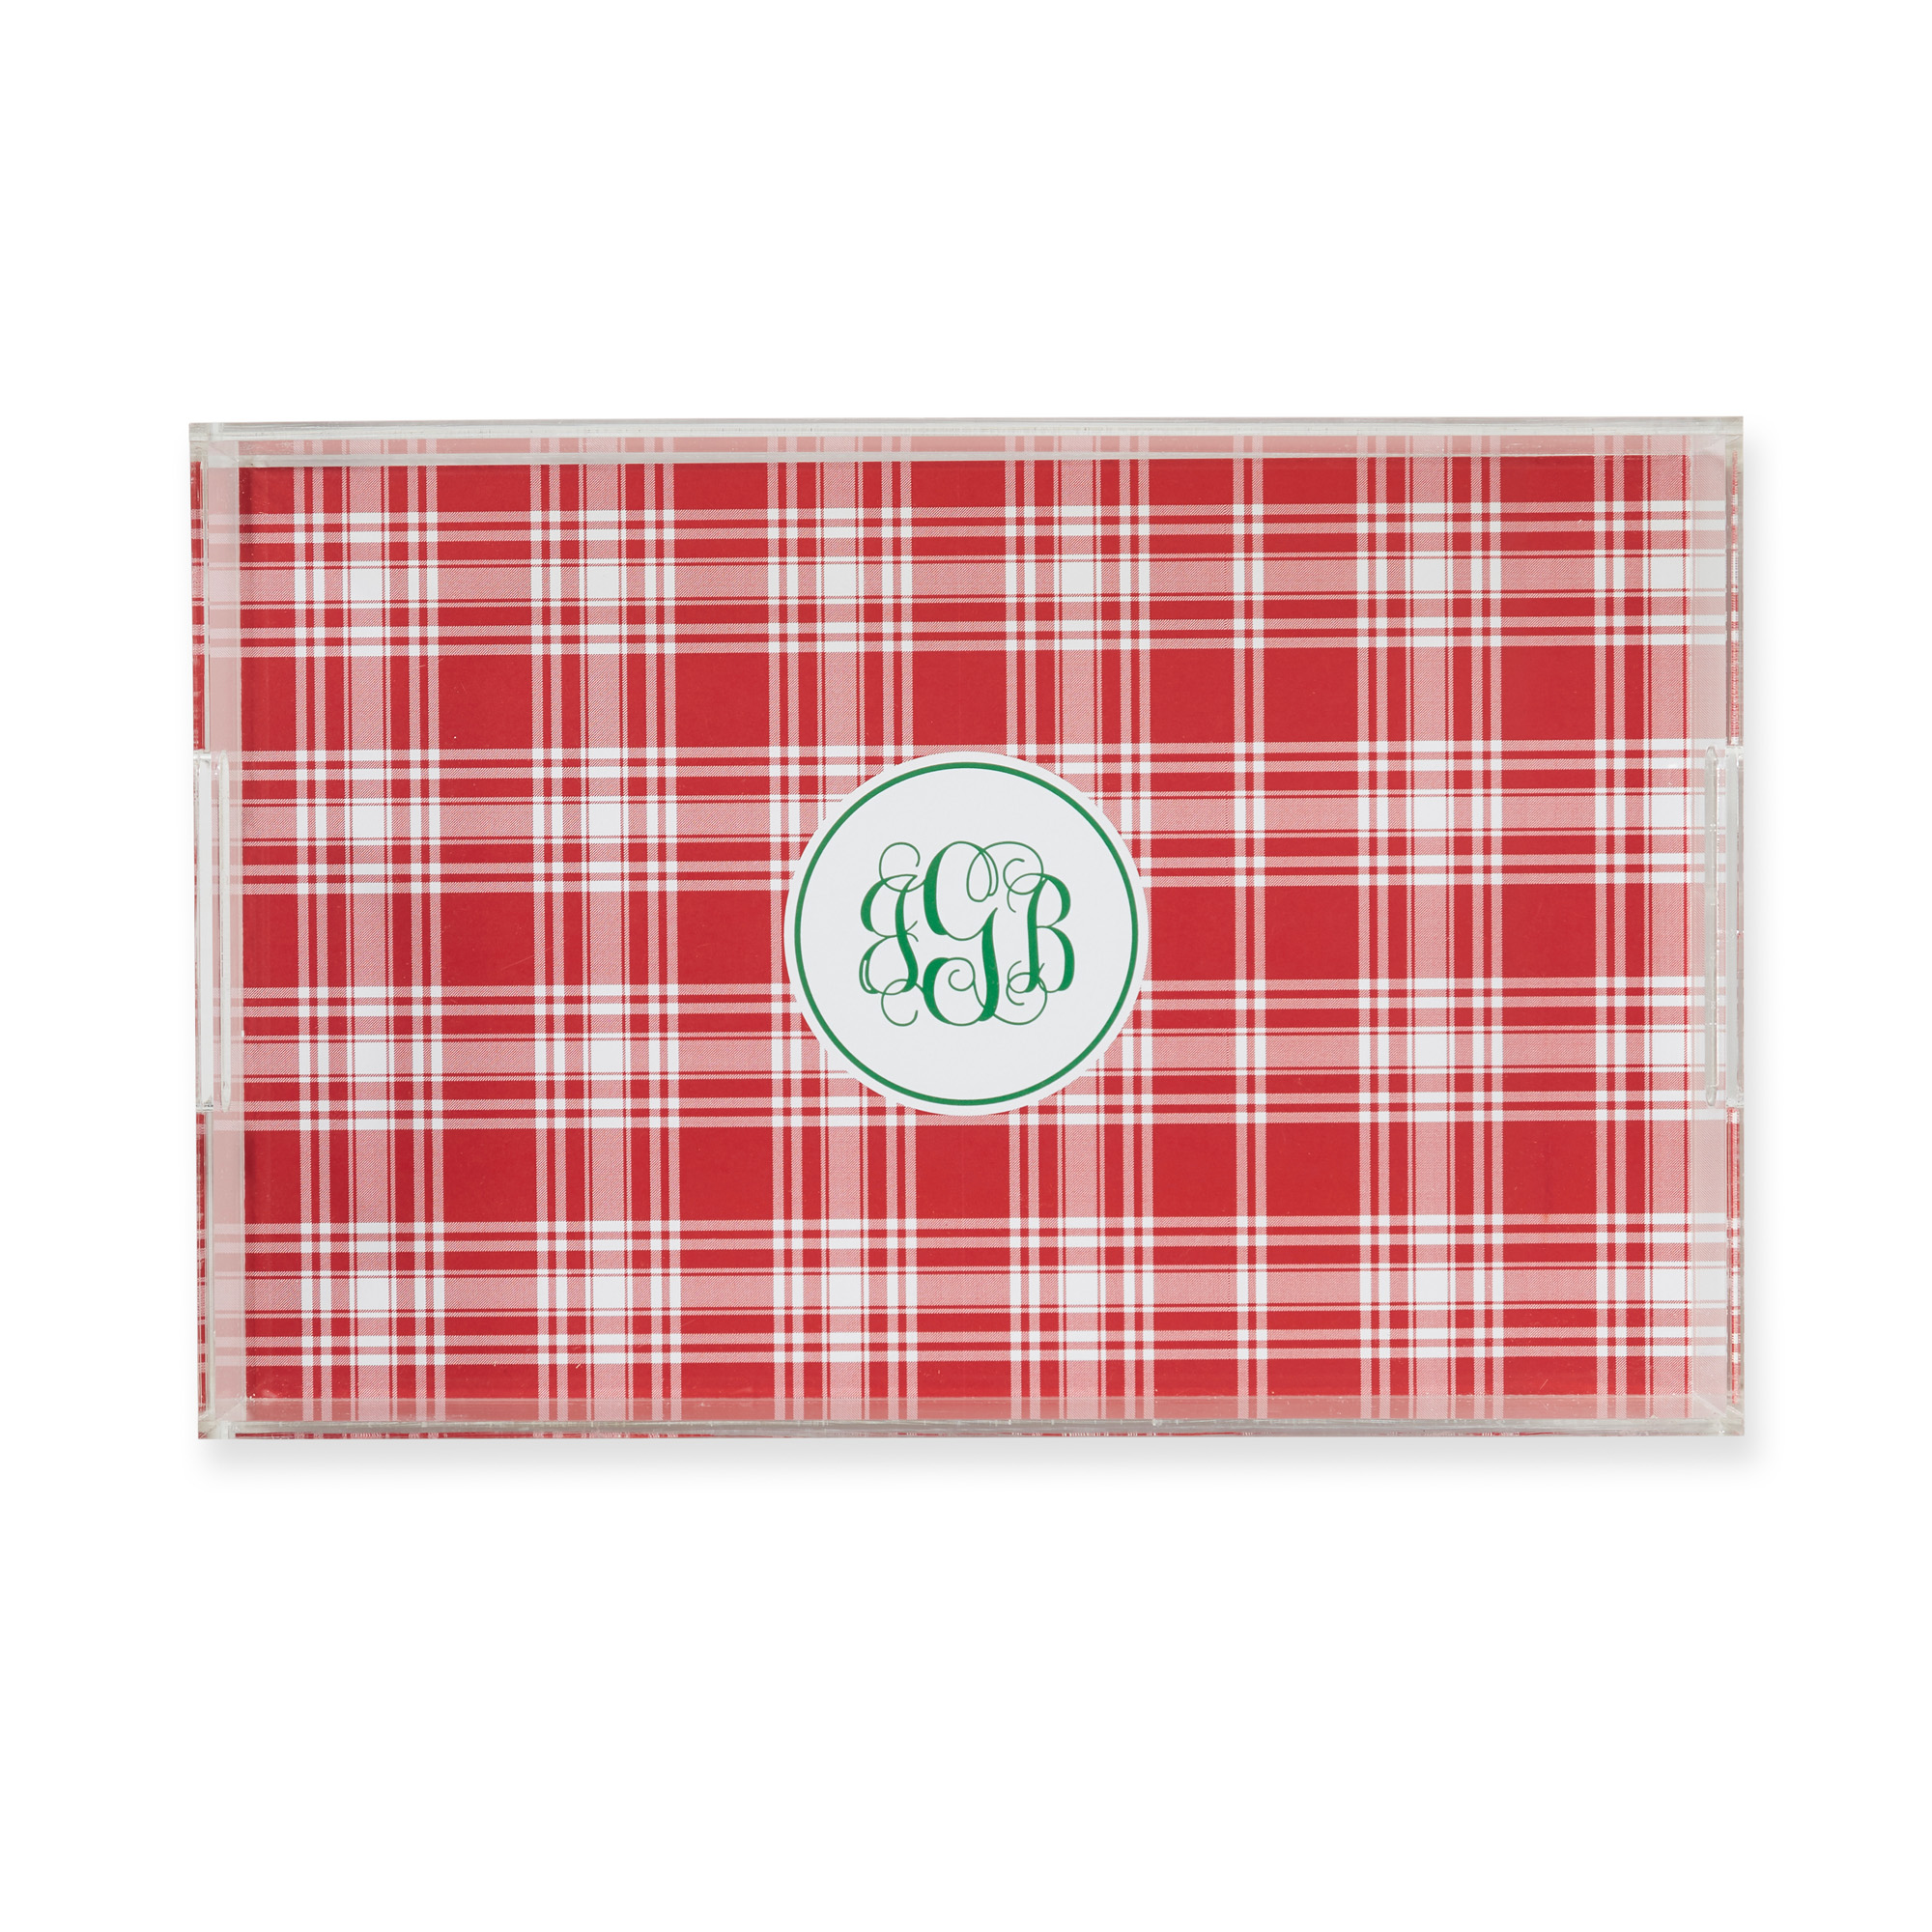 Patterned Lucite Tray with Monogram